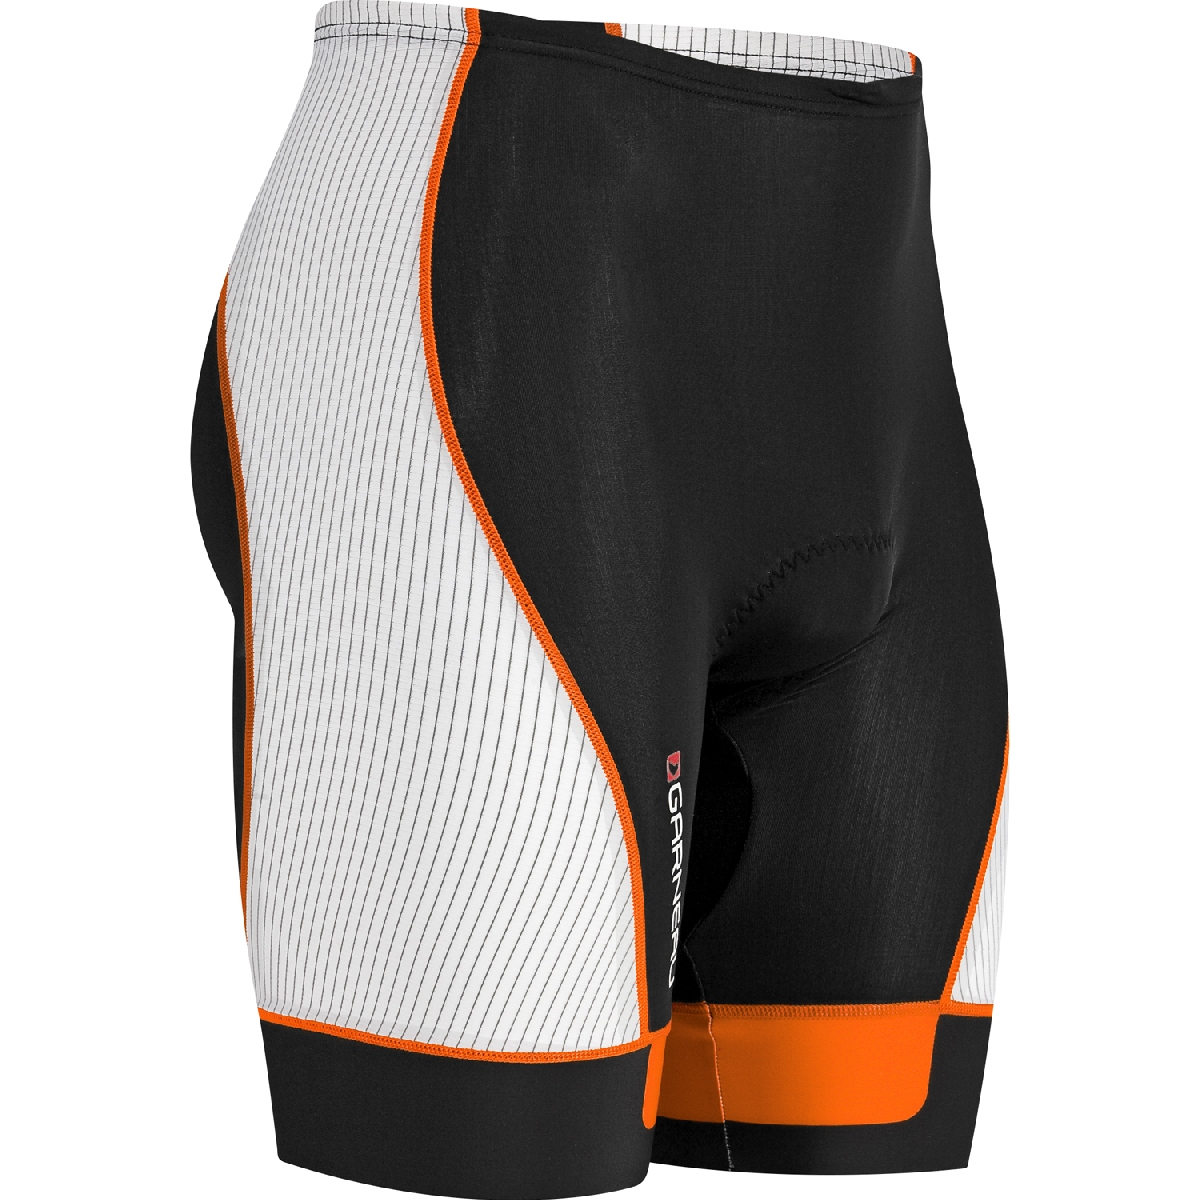 Louis Garneau Pro 8 Triathlon Short Men's Size XL Black FluoOrange U.S.A. & Canada